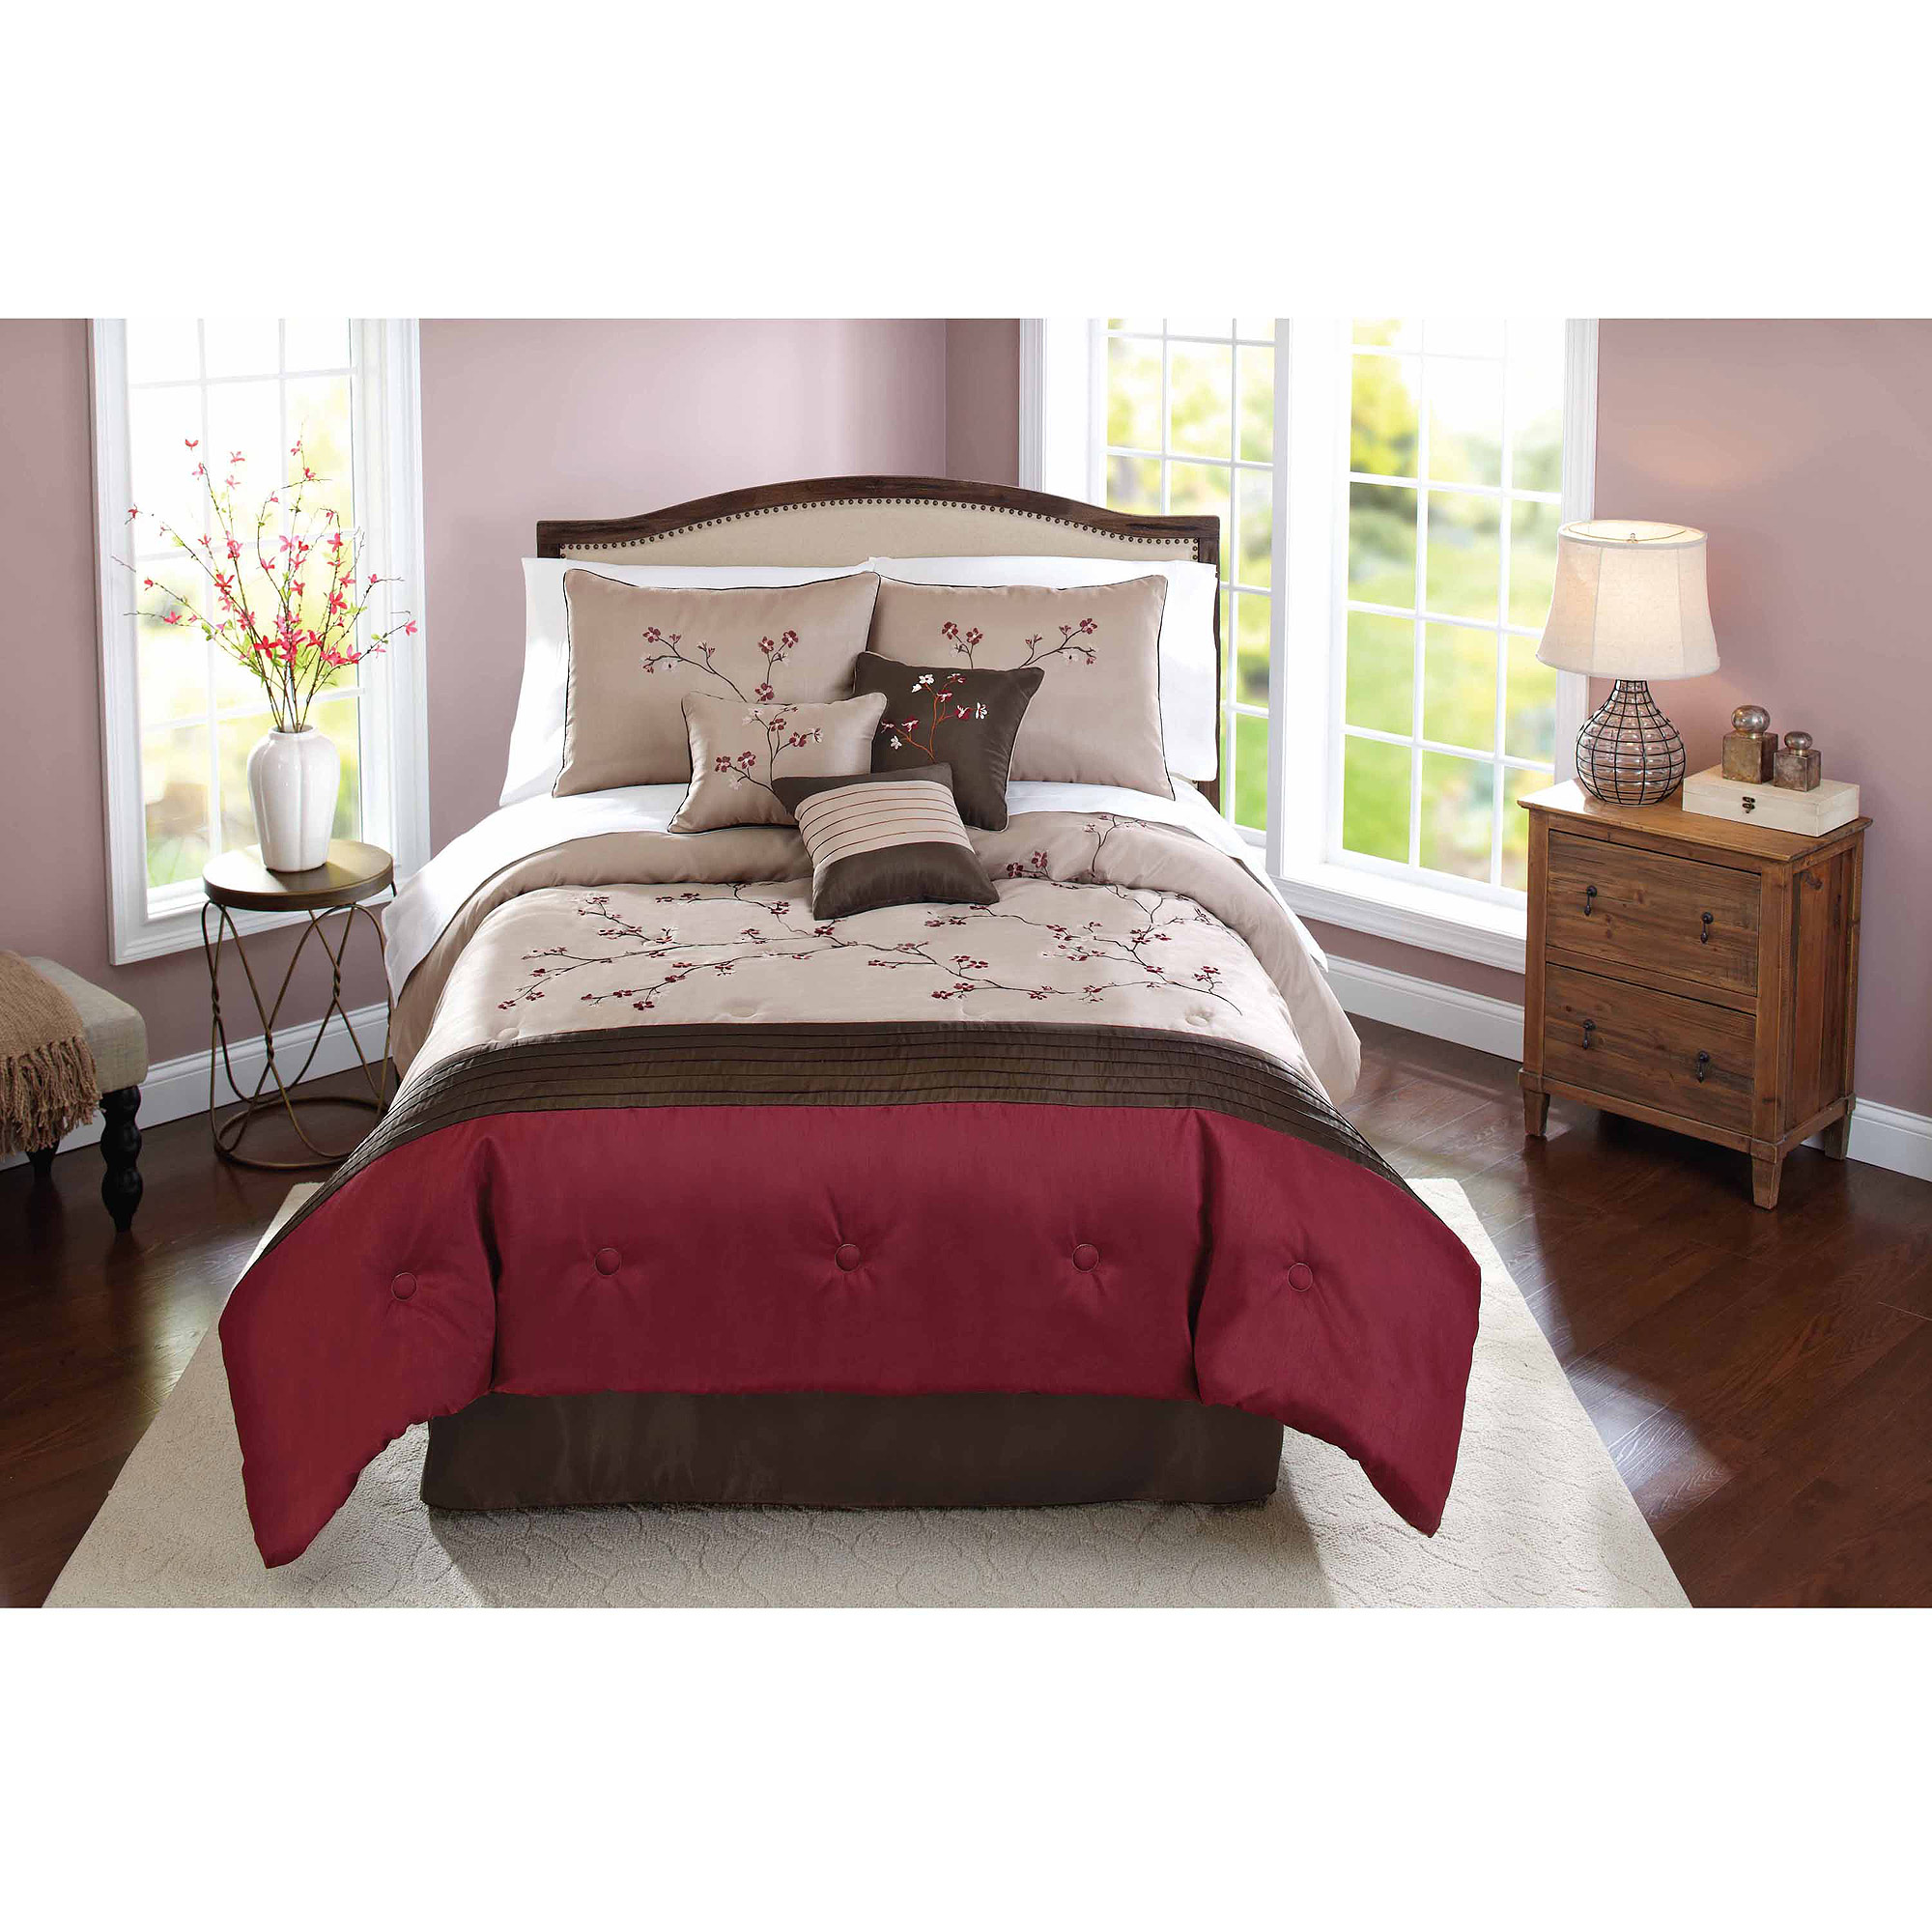 Better Homes and Gardens 7 Piece Comforter Set, Therese